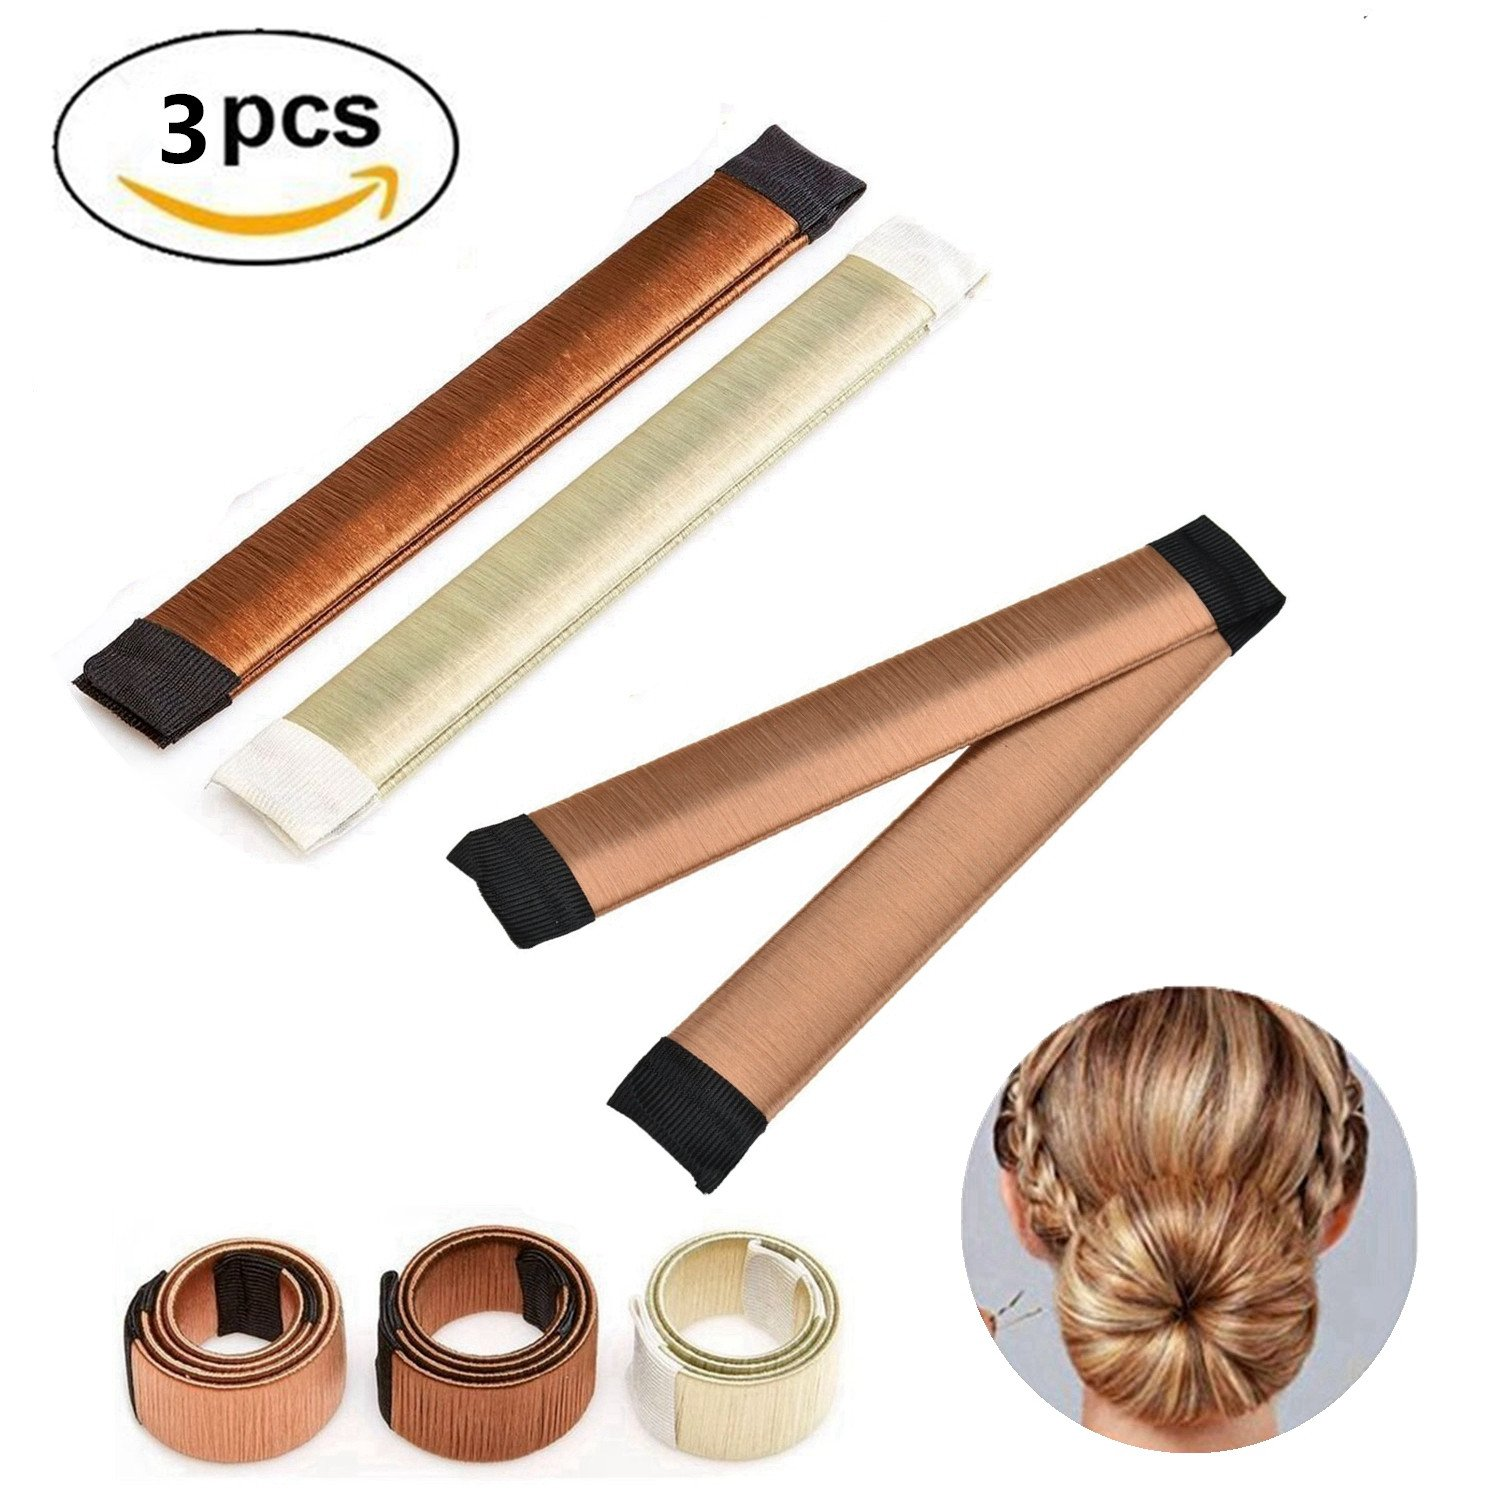 Hair Bun Accessories Hair Bun Maker Tool, 3 PCS French Twist Hair Accessories Hair Clip for Buns, Fashion Bun Shapers Donut Bun Maker Hairstyle Toll for Women Girls Ealicere